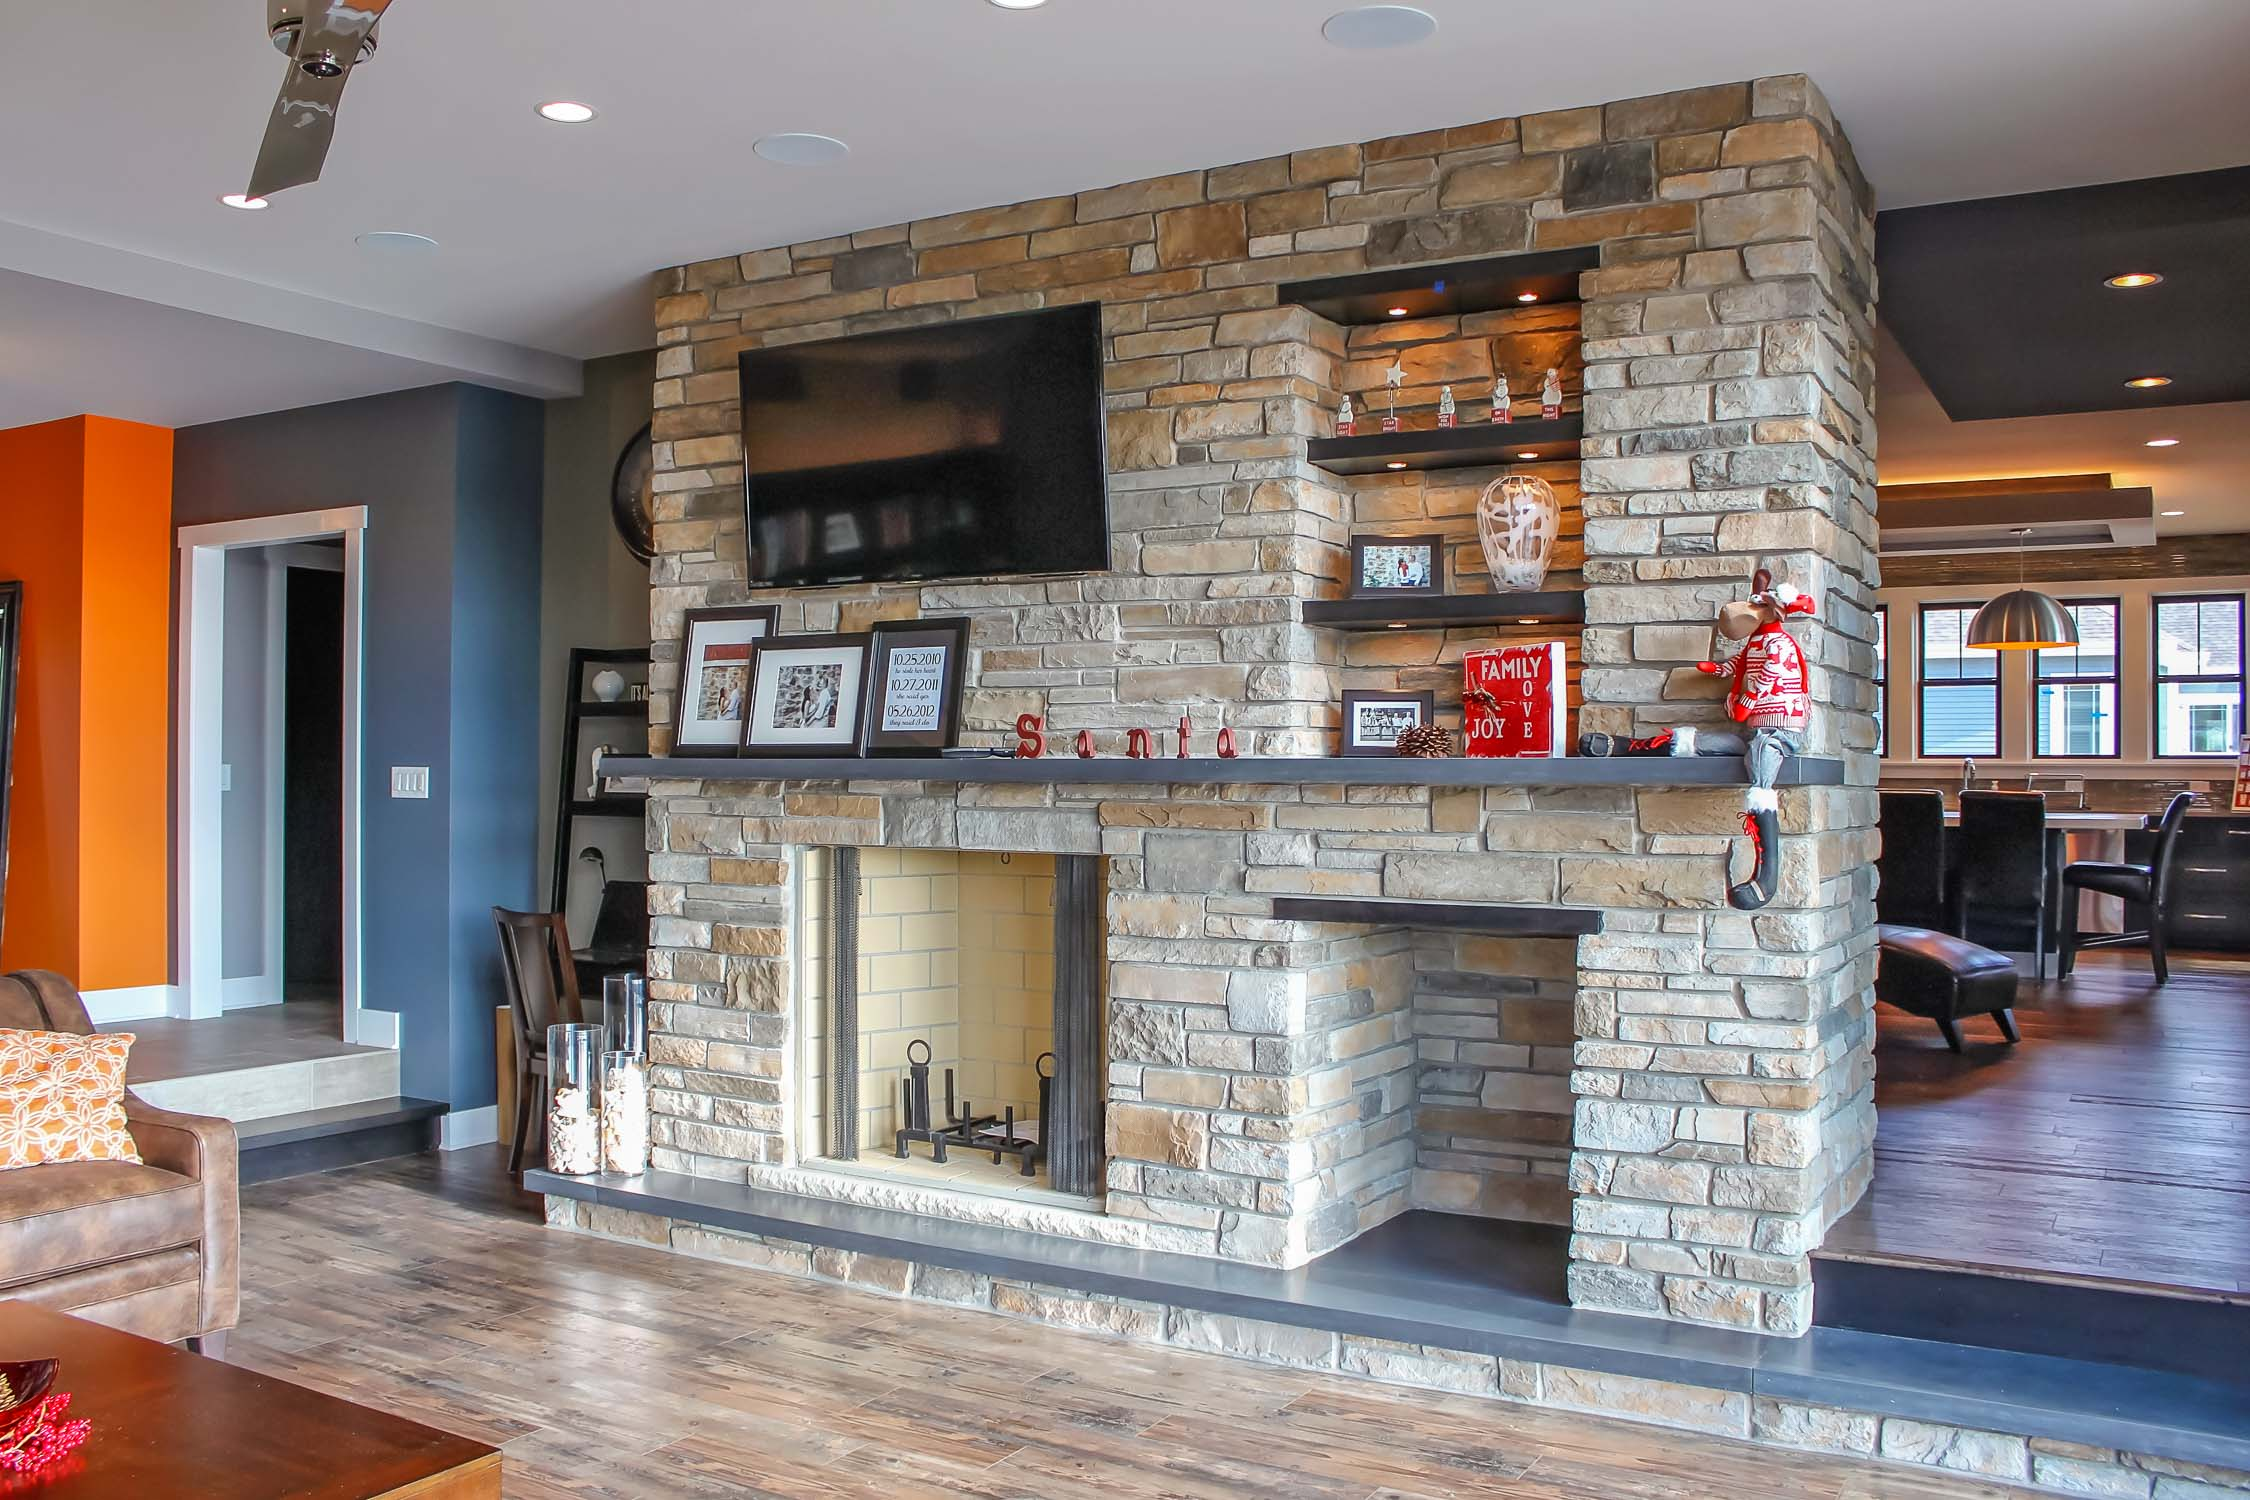 Choosing a fireplace when remodeling a home.